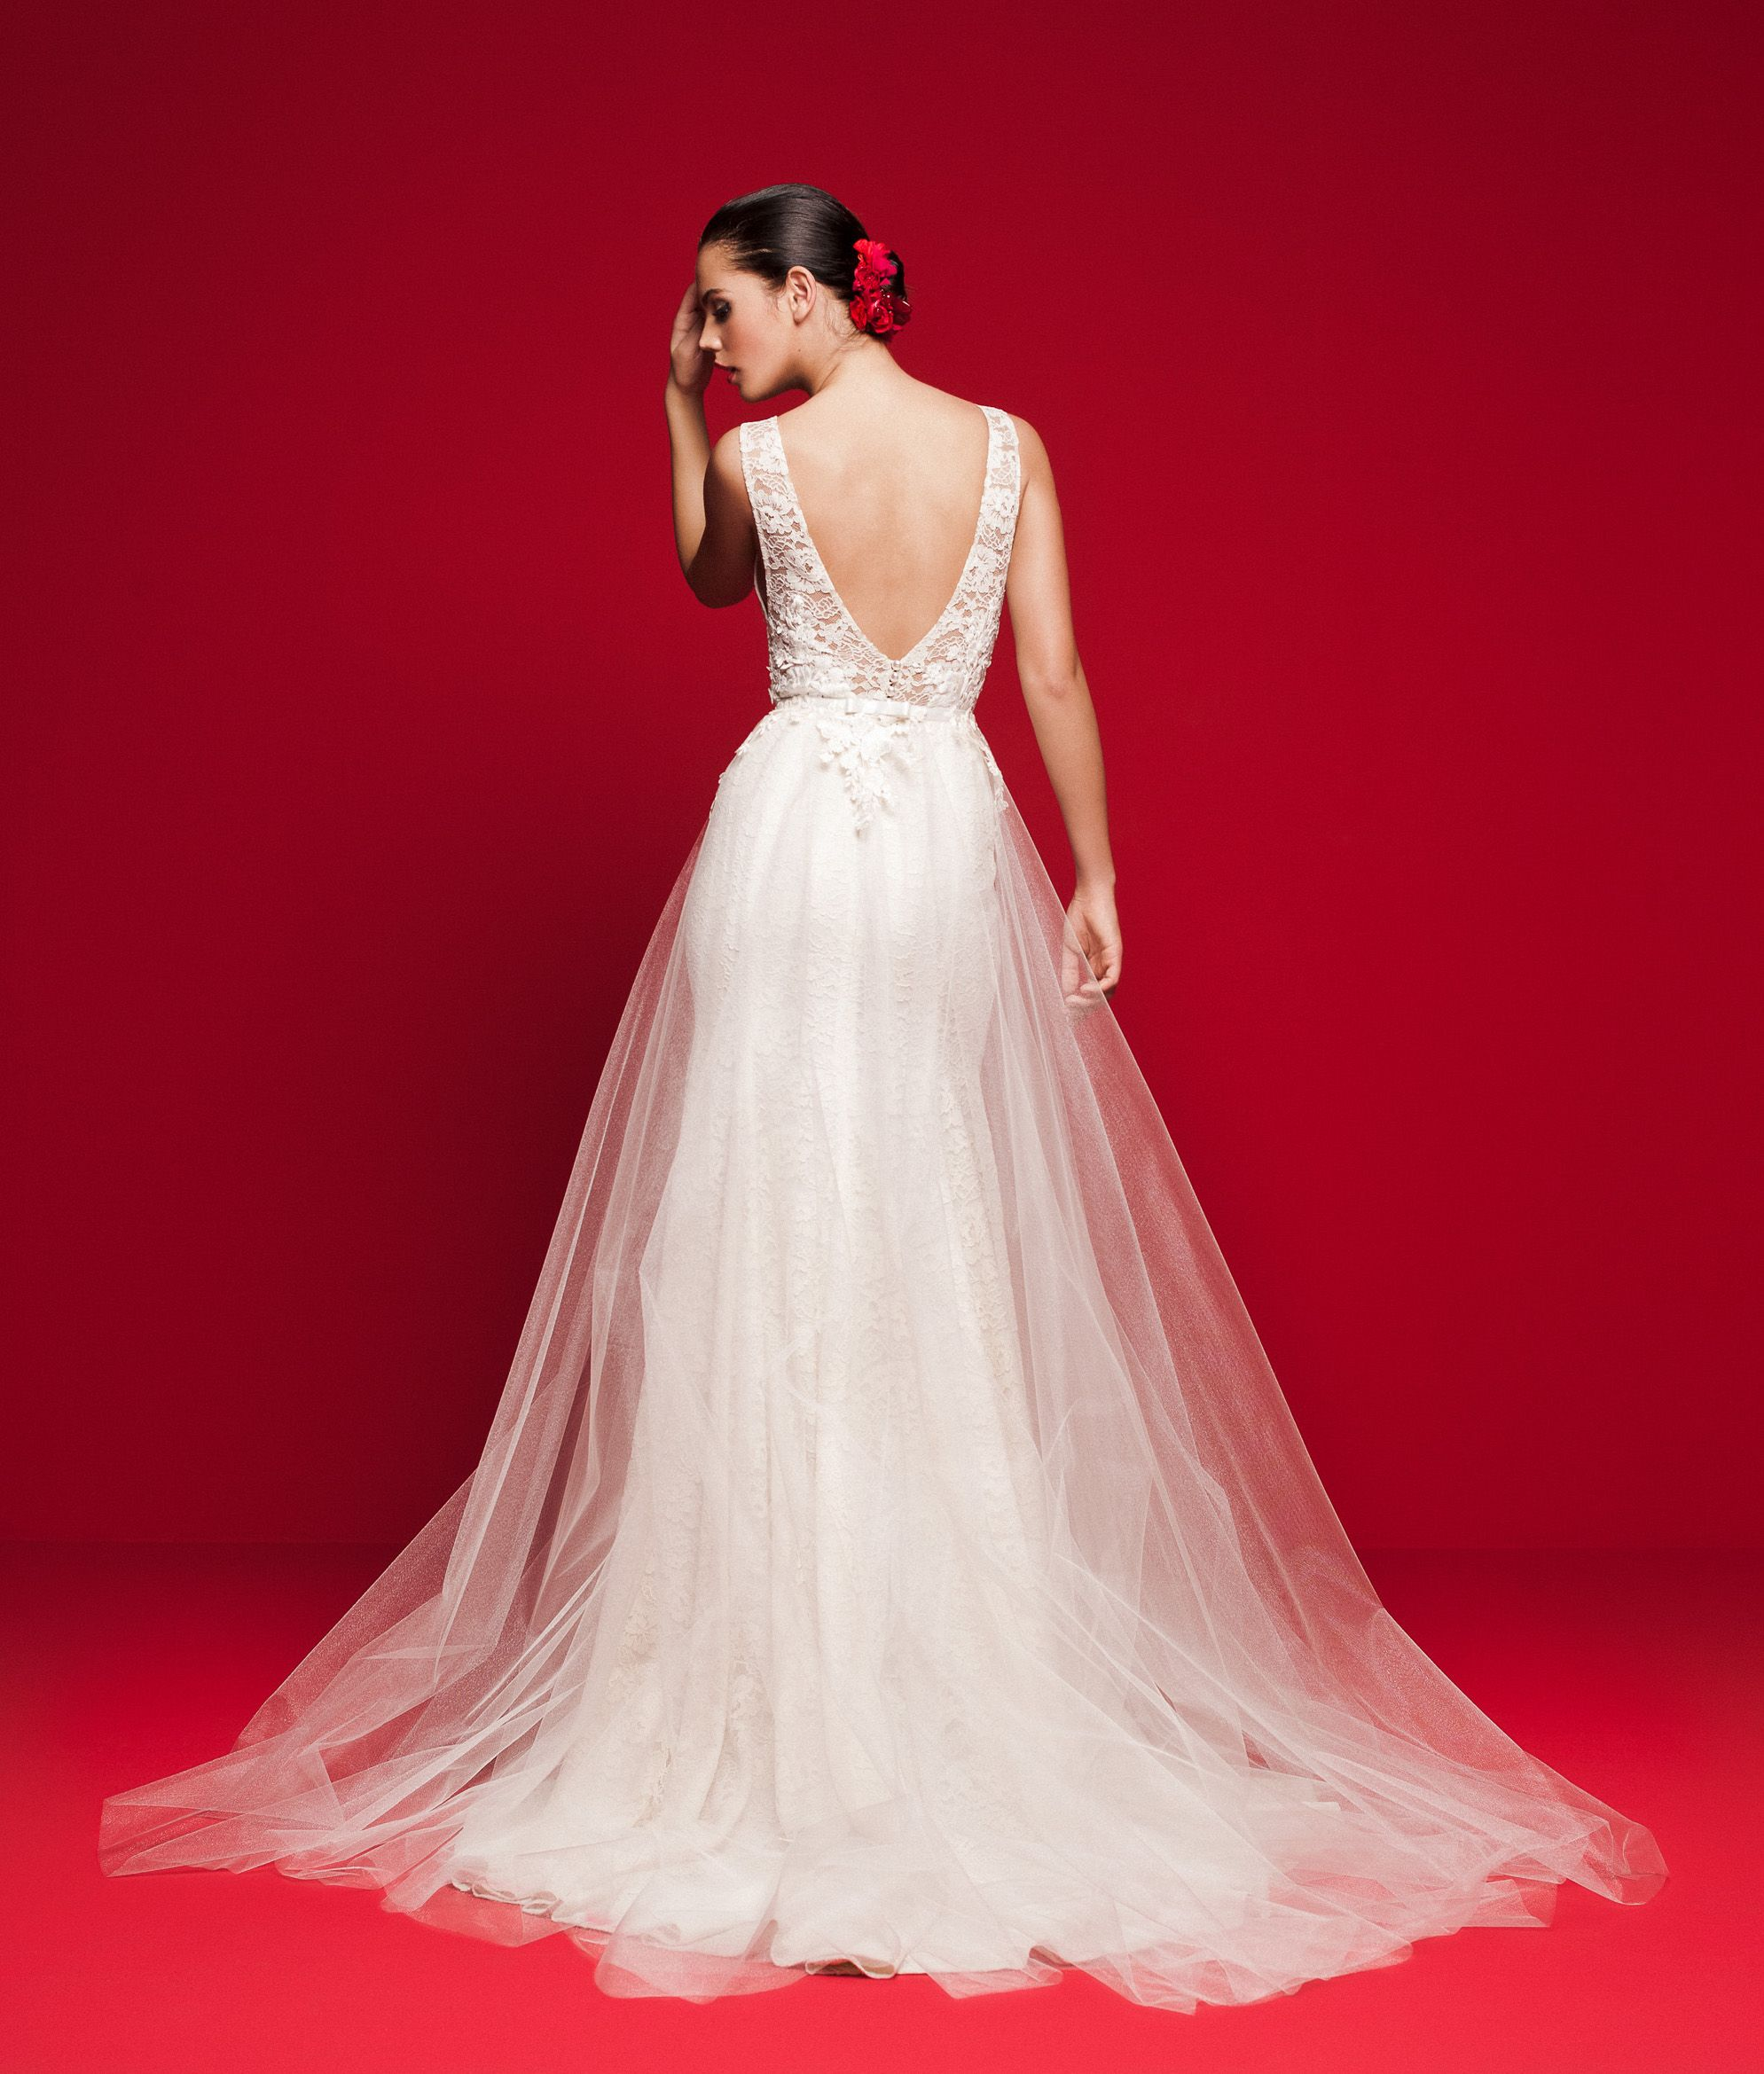 Over Skirt Wedding Dresses Lace And Tulle Sheer Neckline